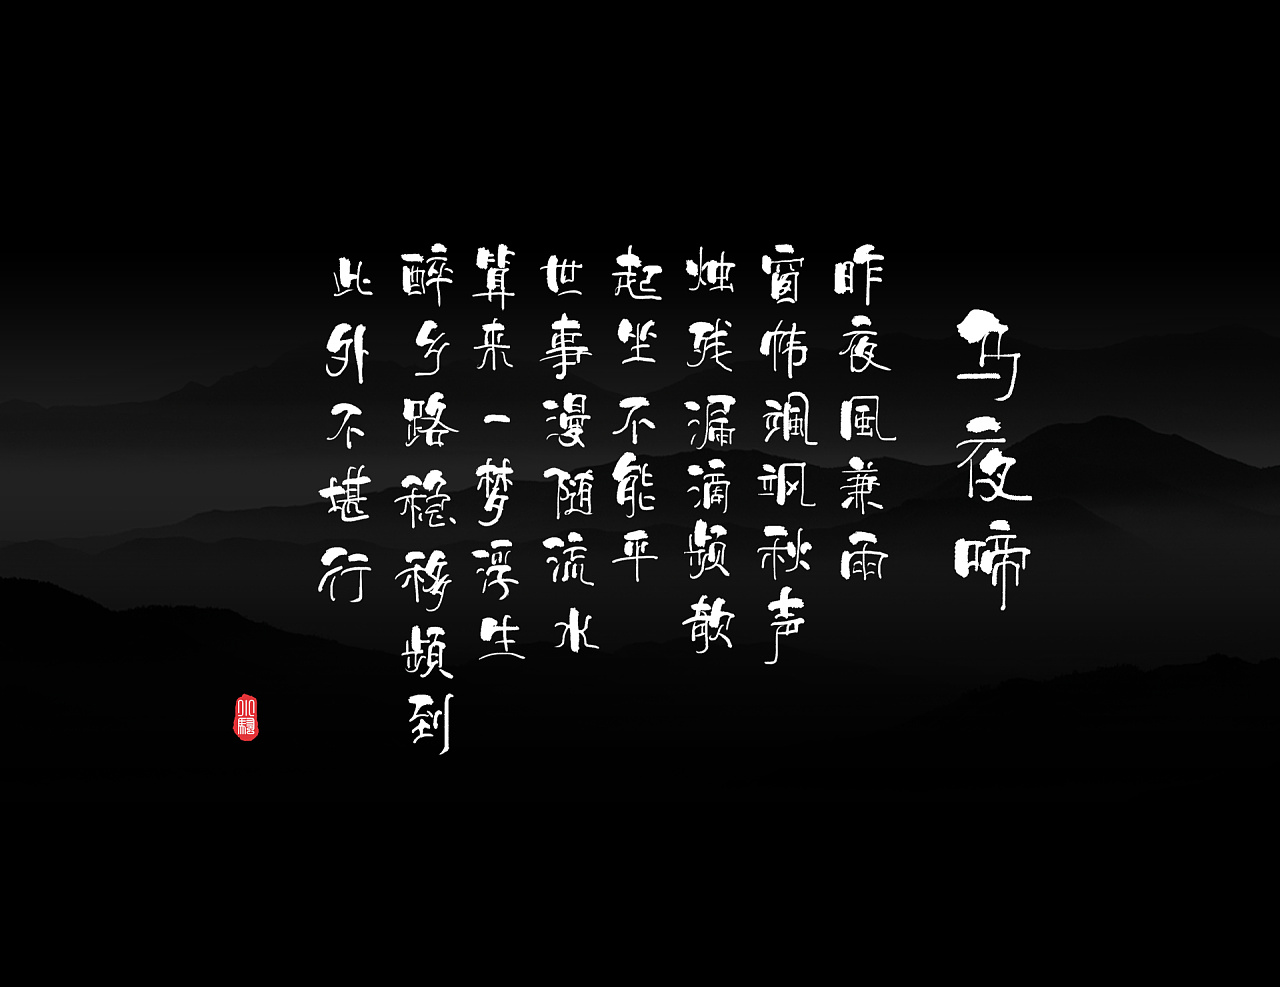 chinesefontdesign.com 2018 02 04 12 37 16 934706 50P Li Sao of Tang Song style Chinese Design Inspiration